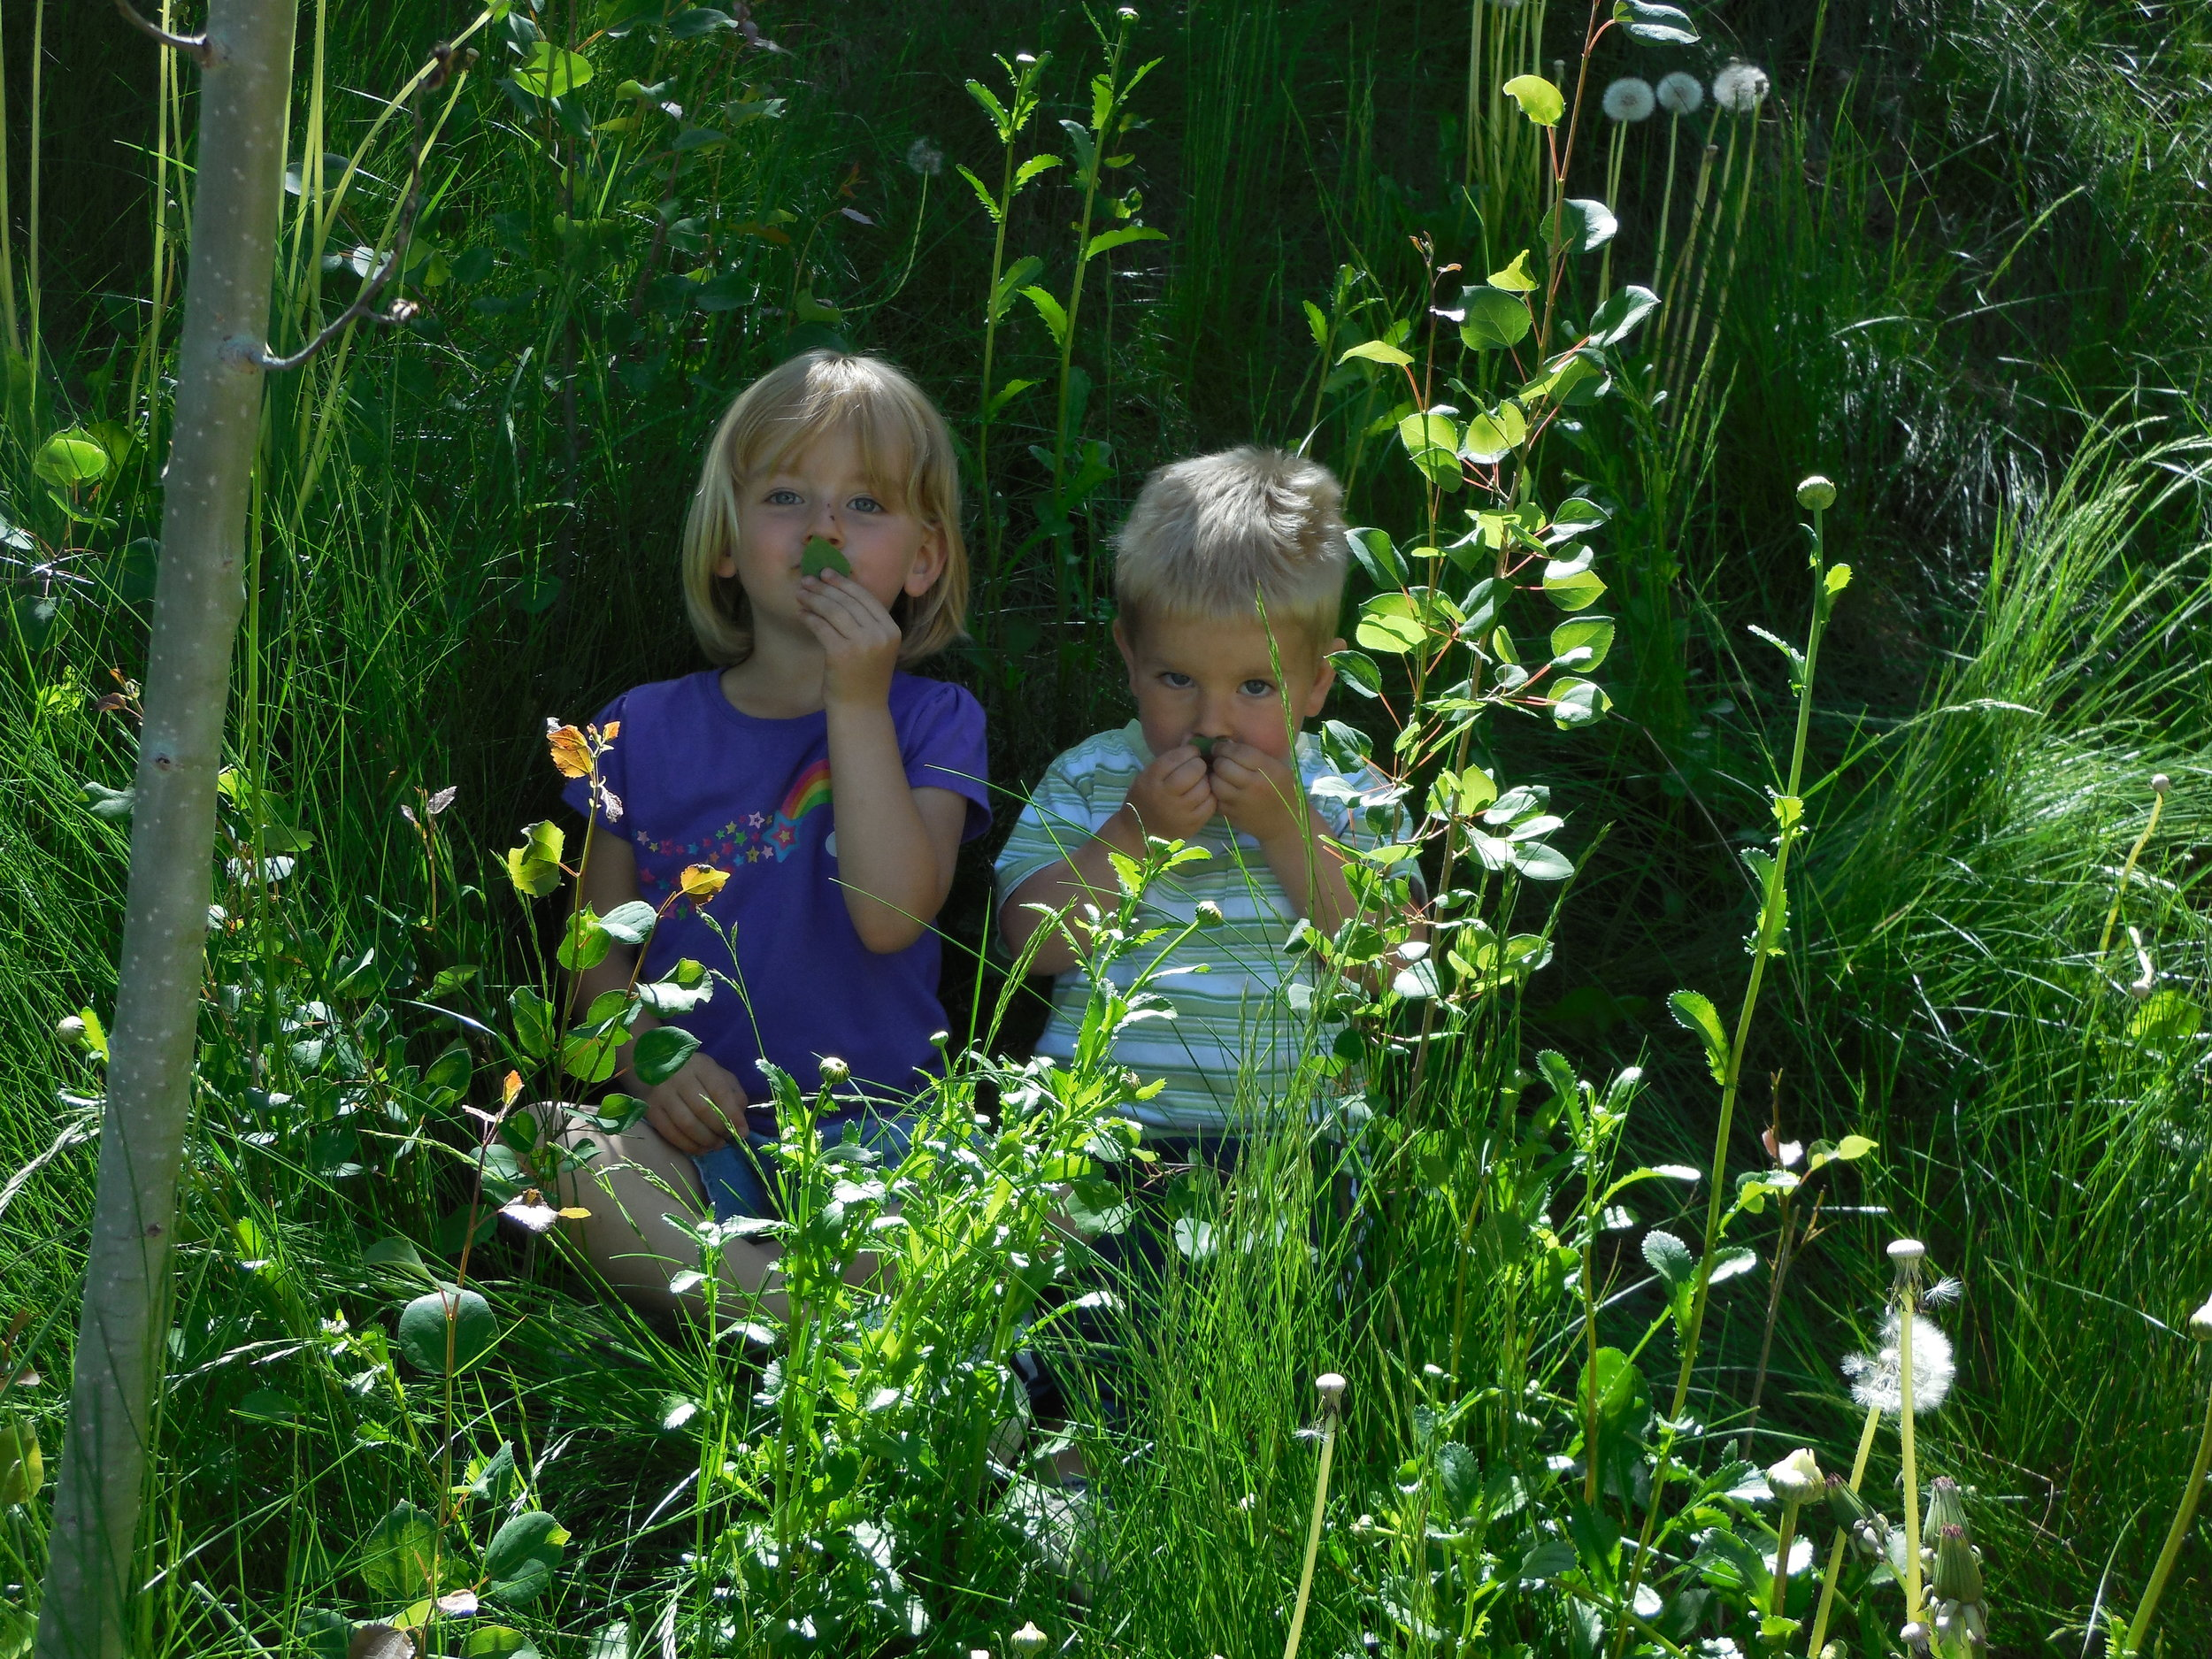 Some tall grass on a shady back slope was the perfect hideaway for these 2 cuties.